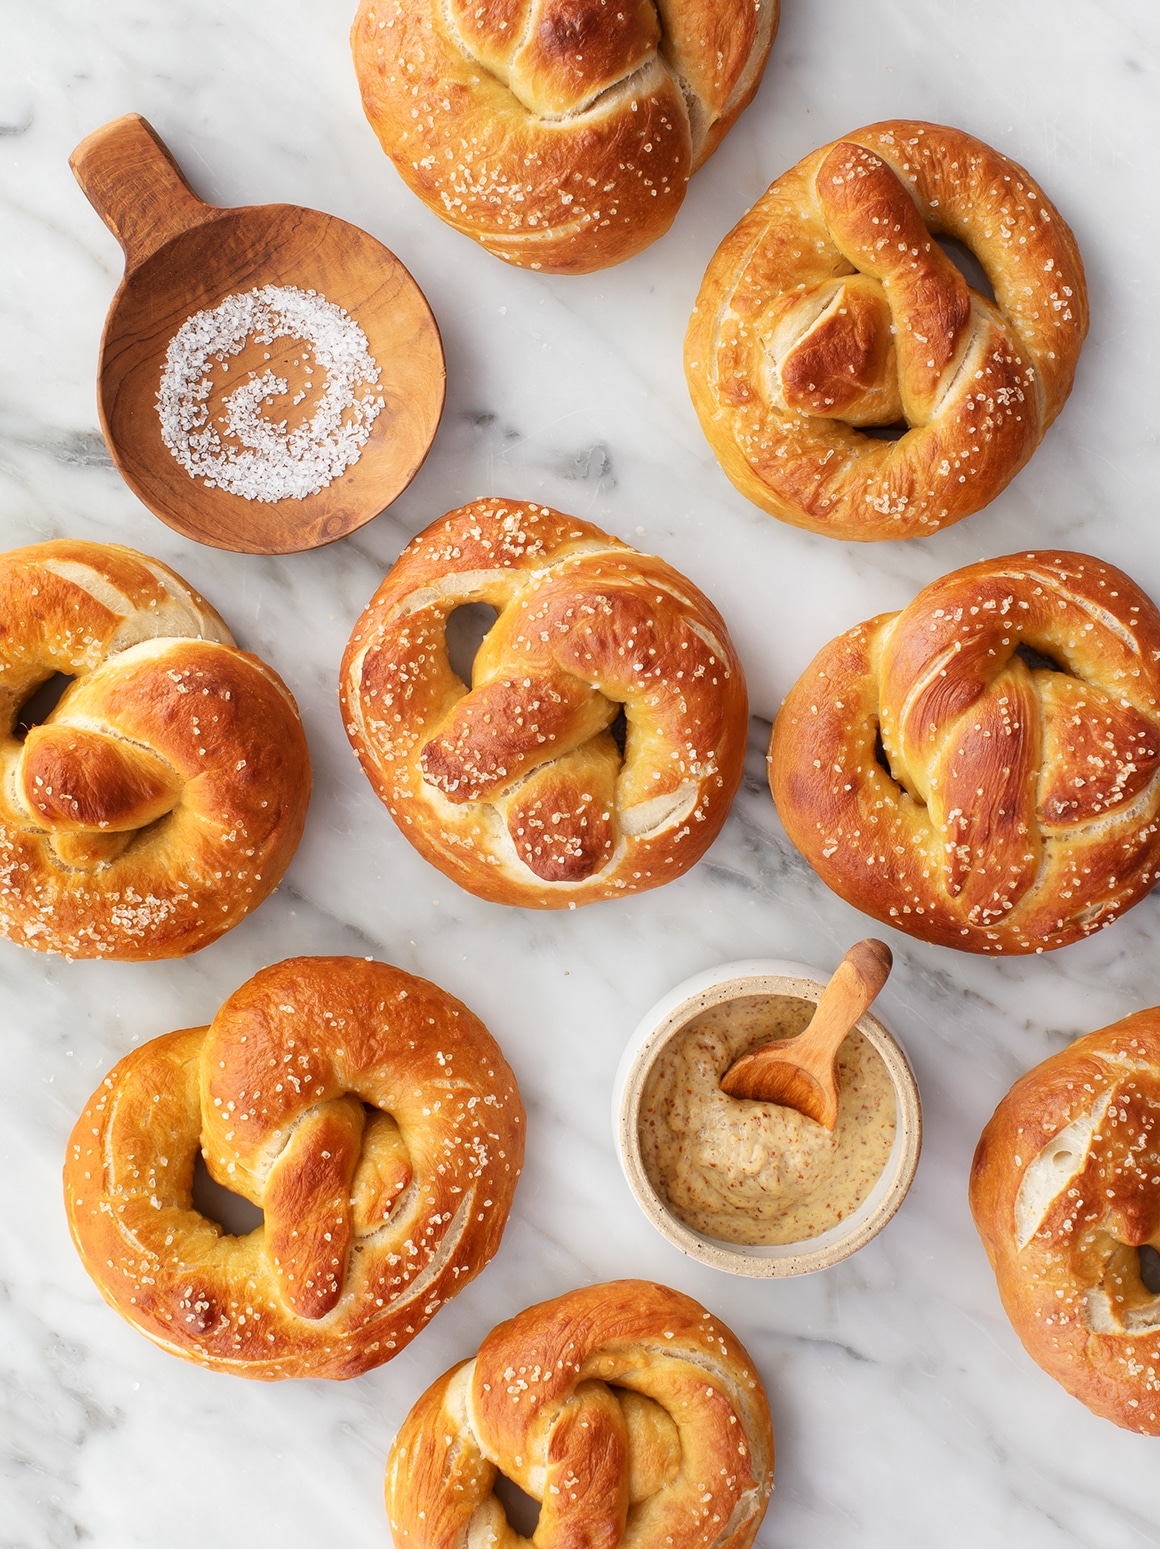 Homemade Soft Pretzels Recipe - Love and Lemons